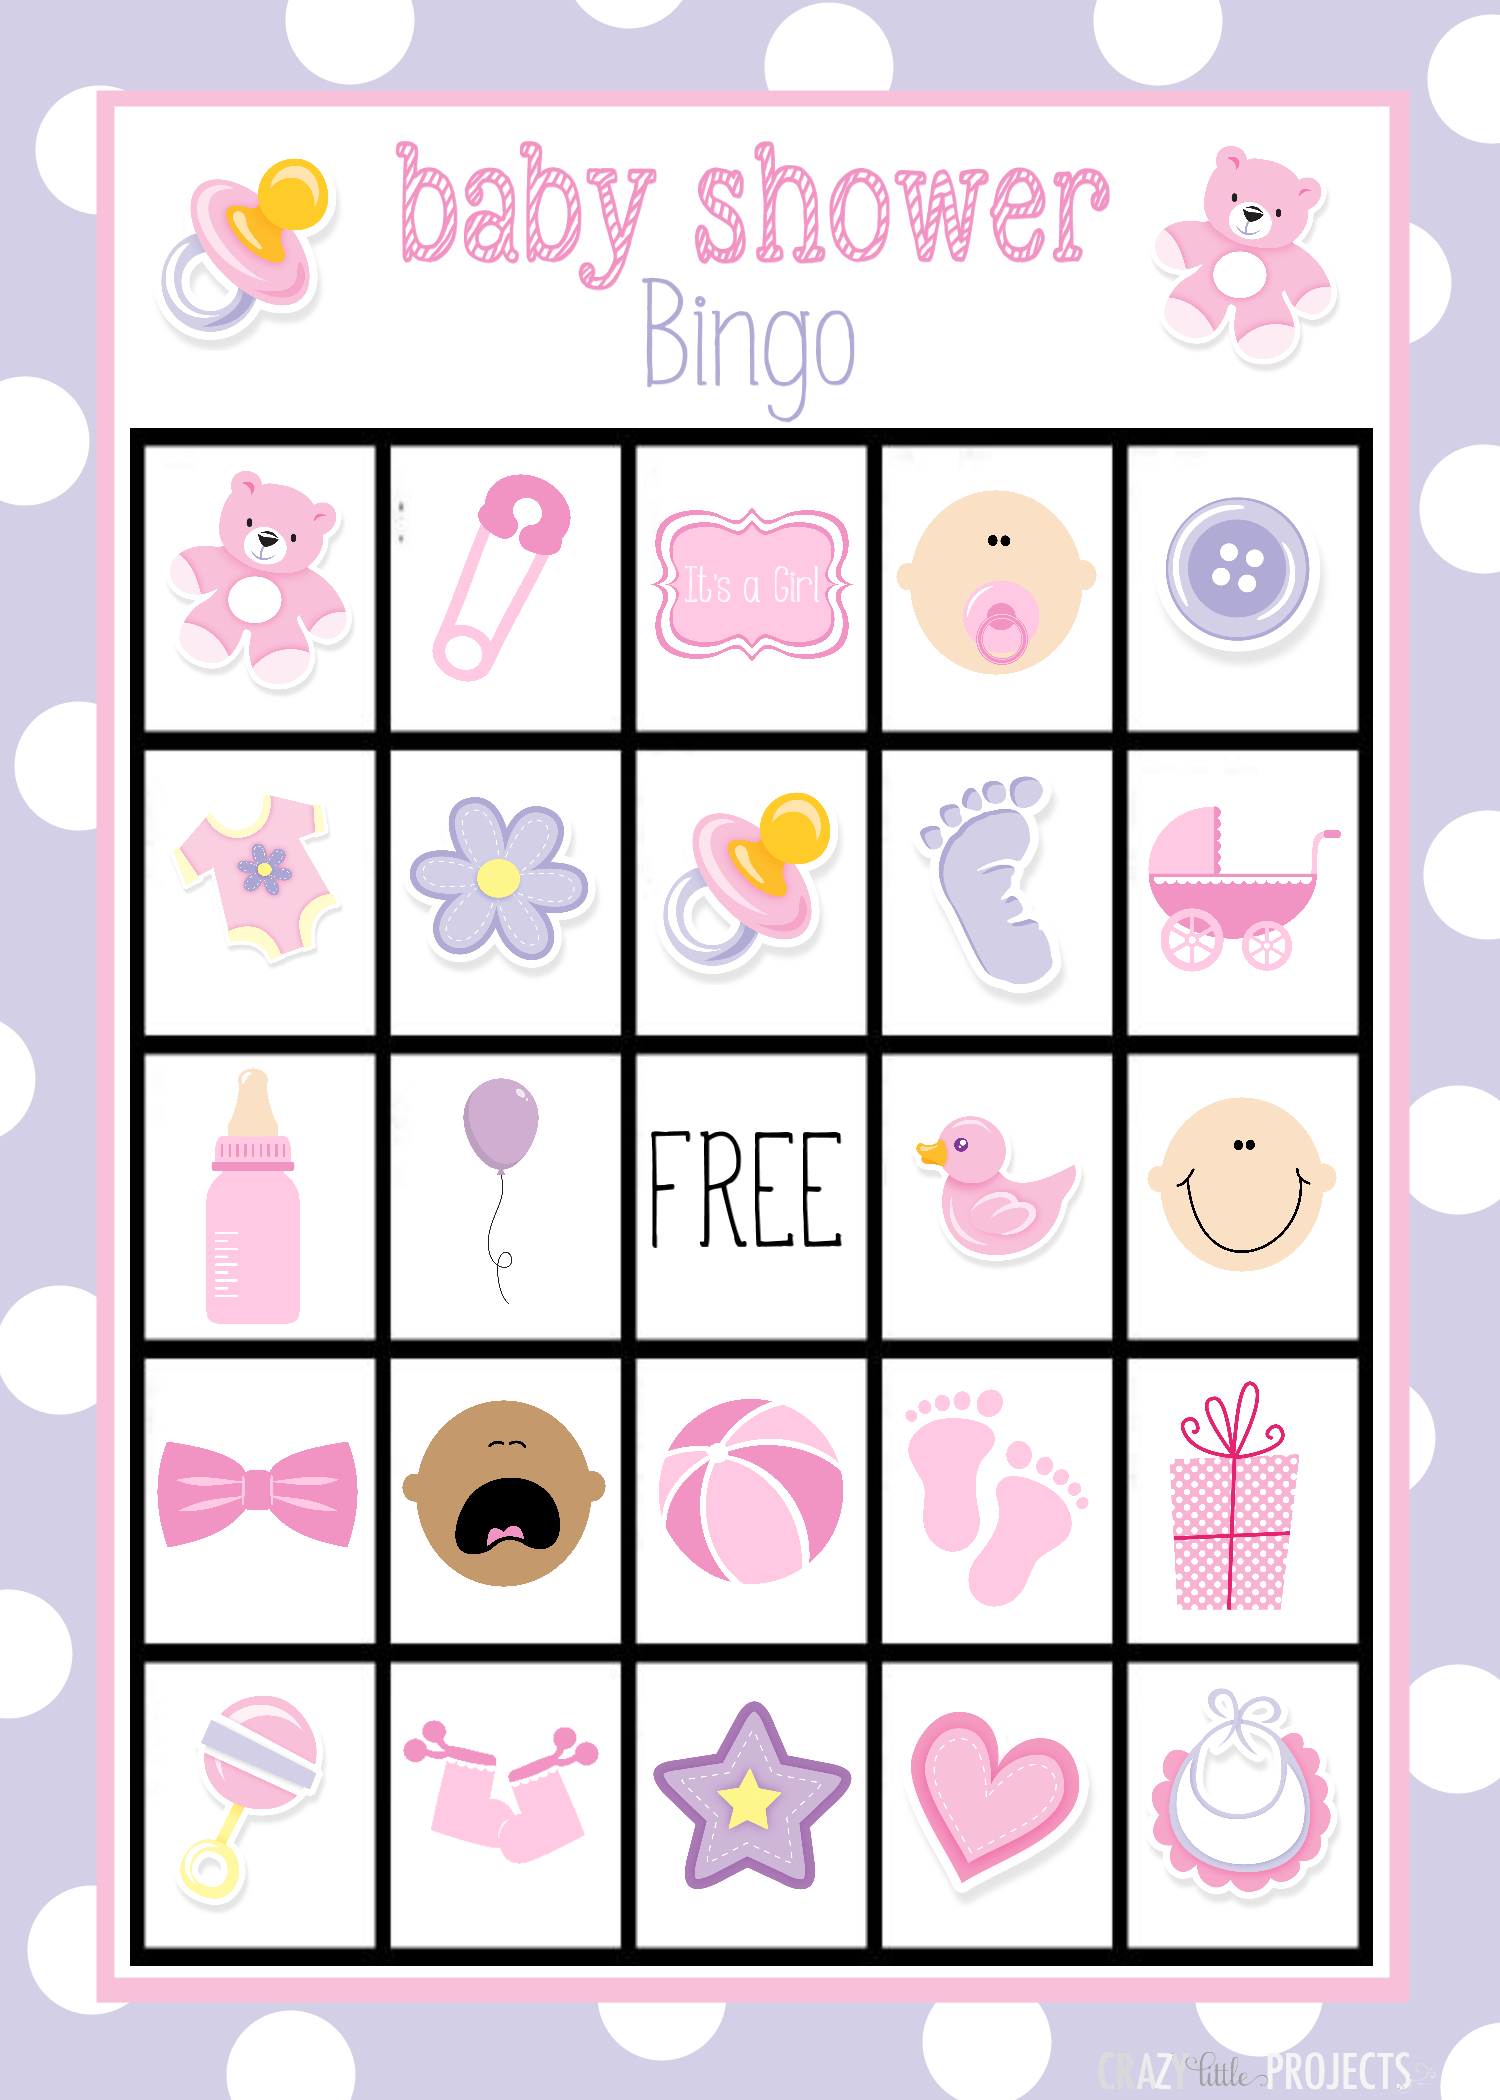 Baby Shower Bingo Cards - Free Printable Baby Shower Bingo Cards